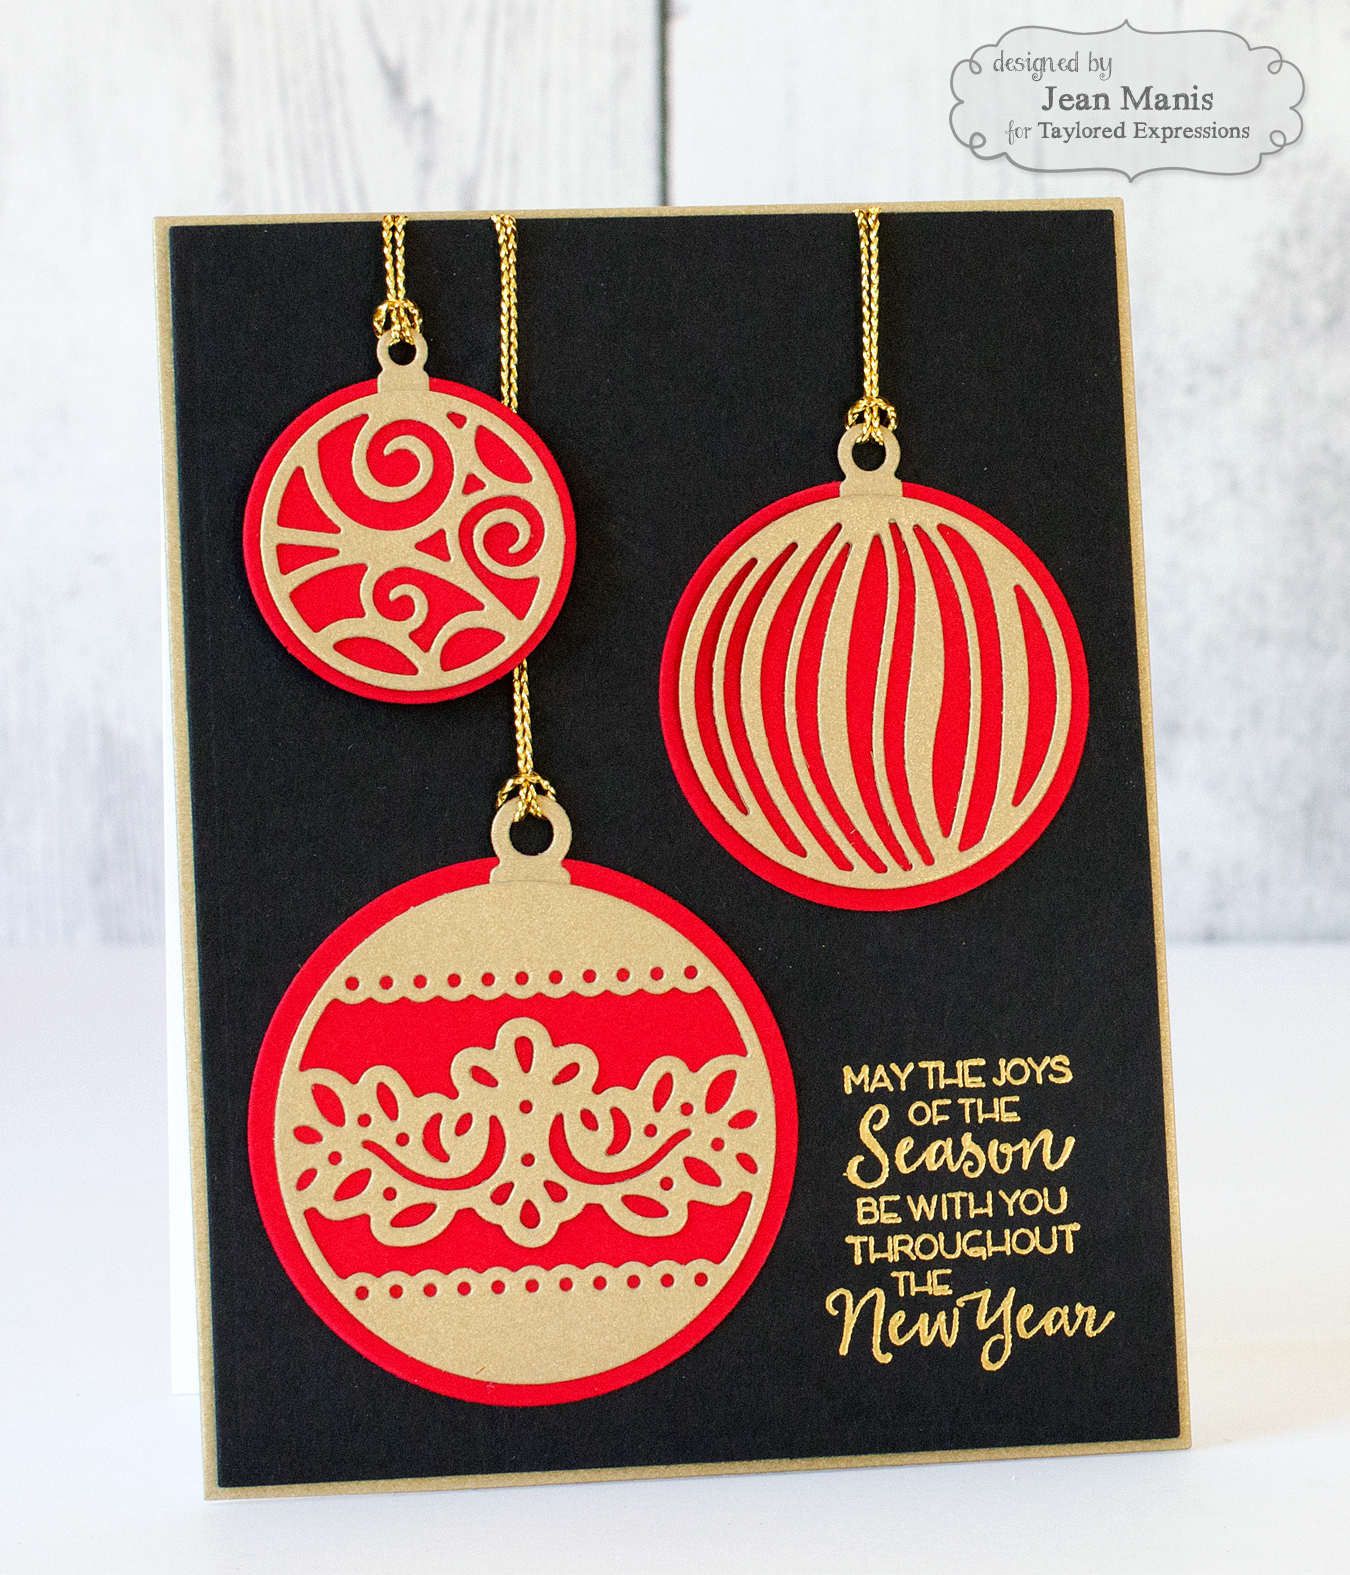 Drama christmas ornaments - I Cut The Ornament Overlays And Ornament Accessories From Gold Cardstock I Heat Embossed The Ornamental Sentiment With Gold Metallic Powder On Oreo